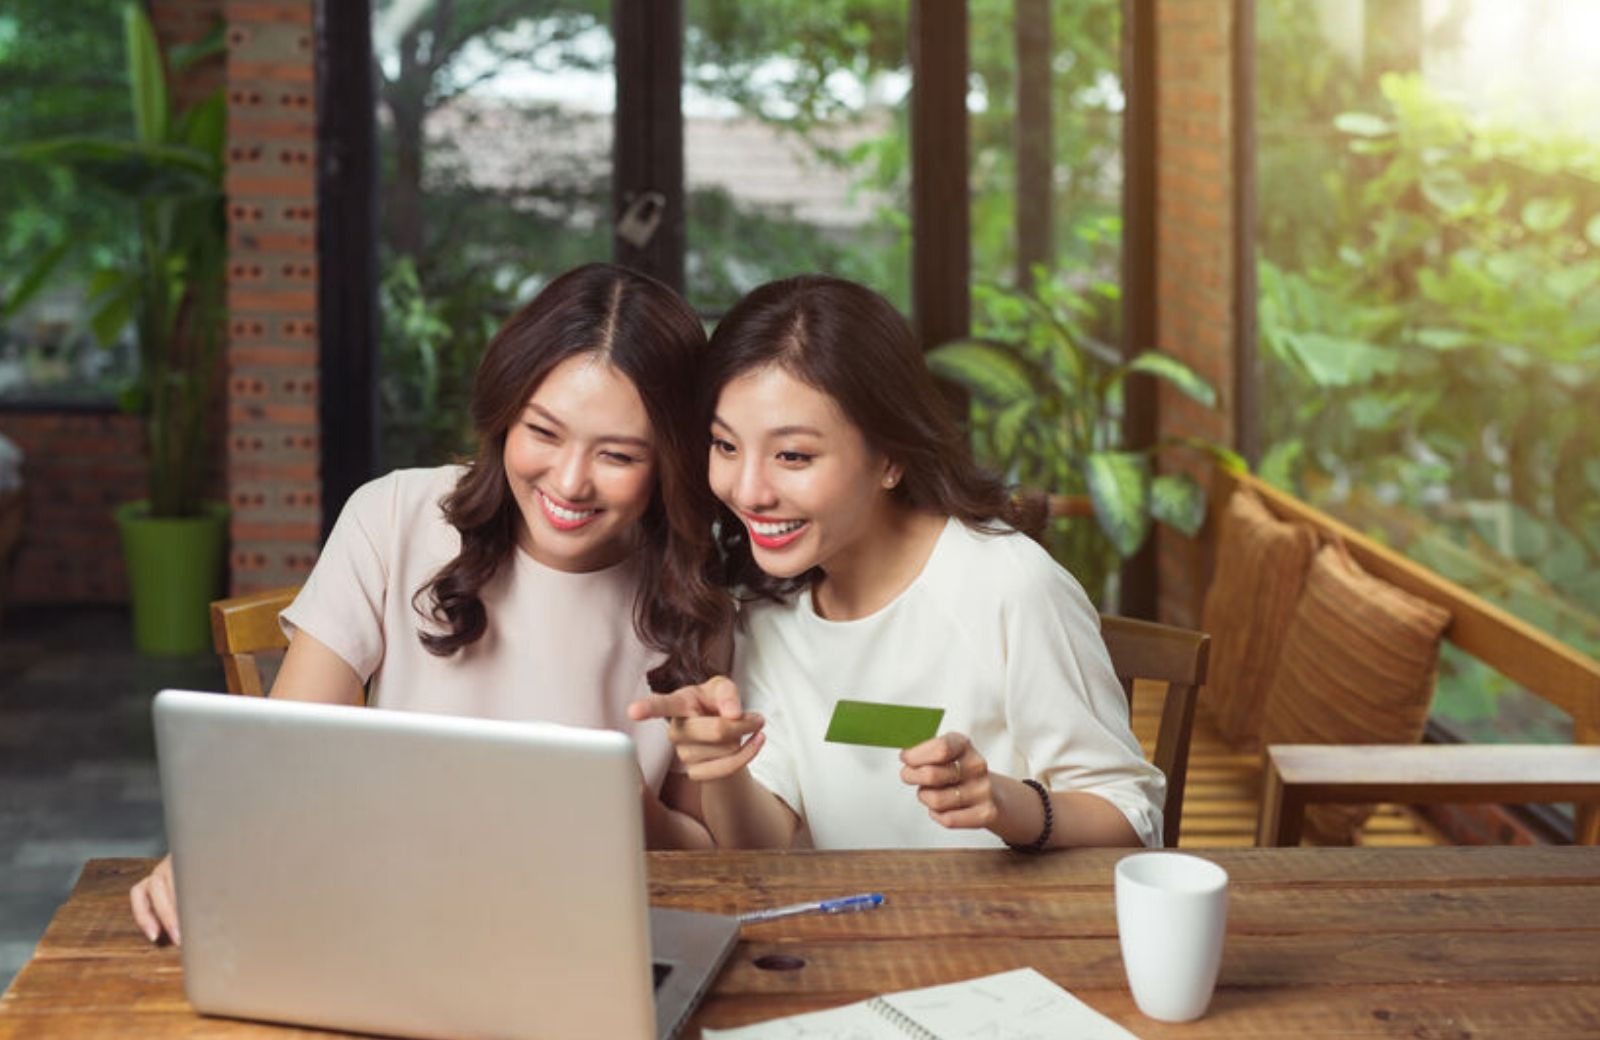 two girls shopping online holding credit card